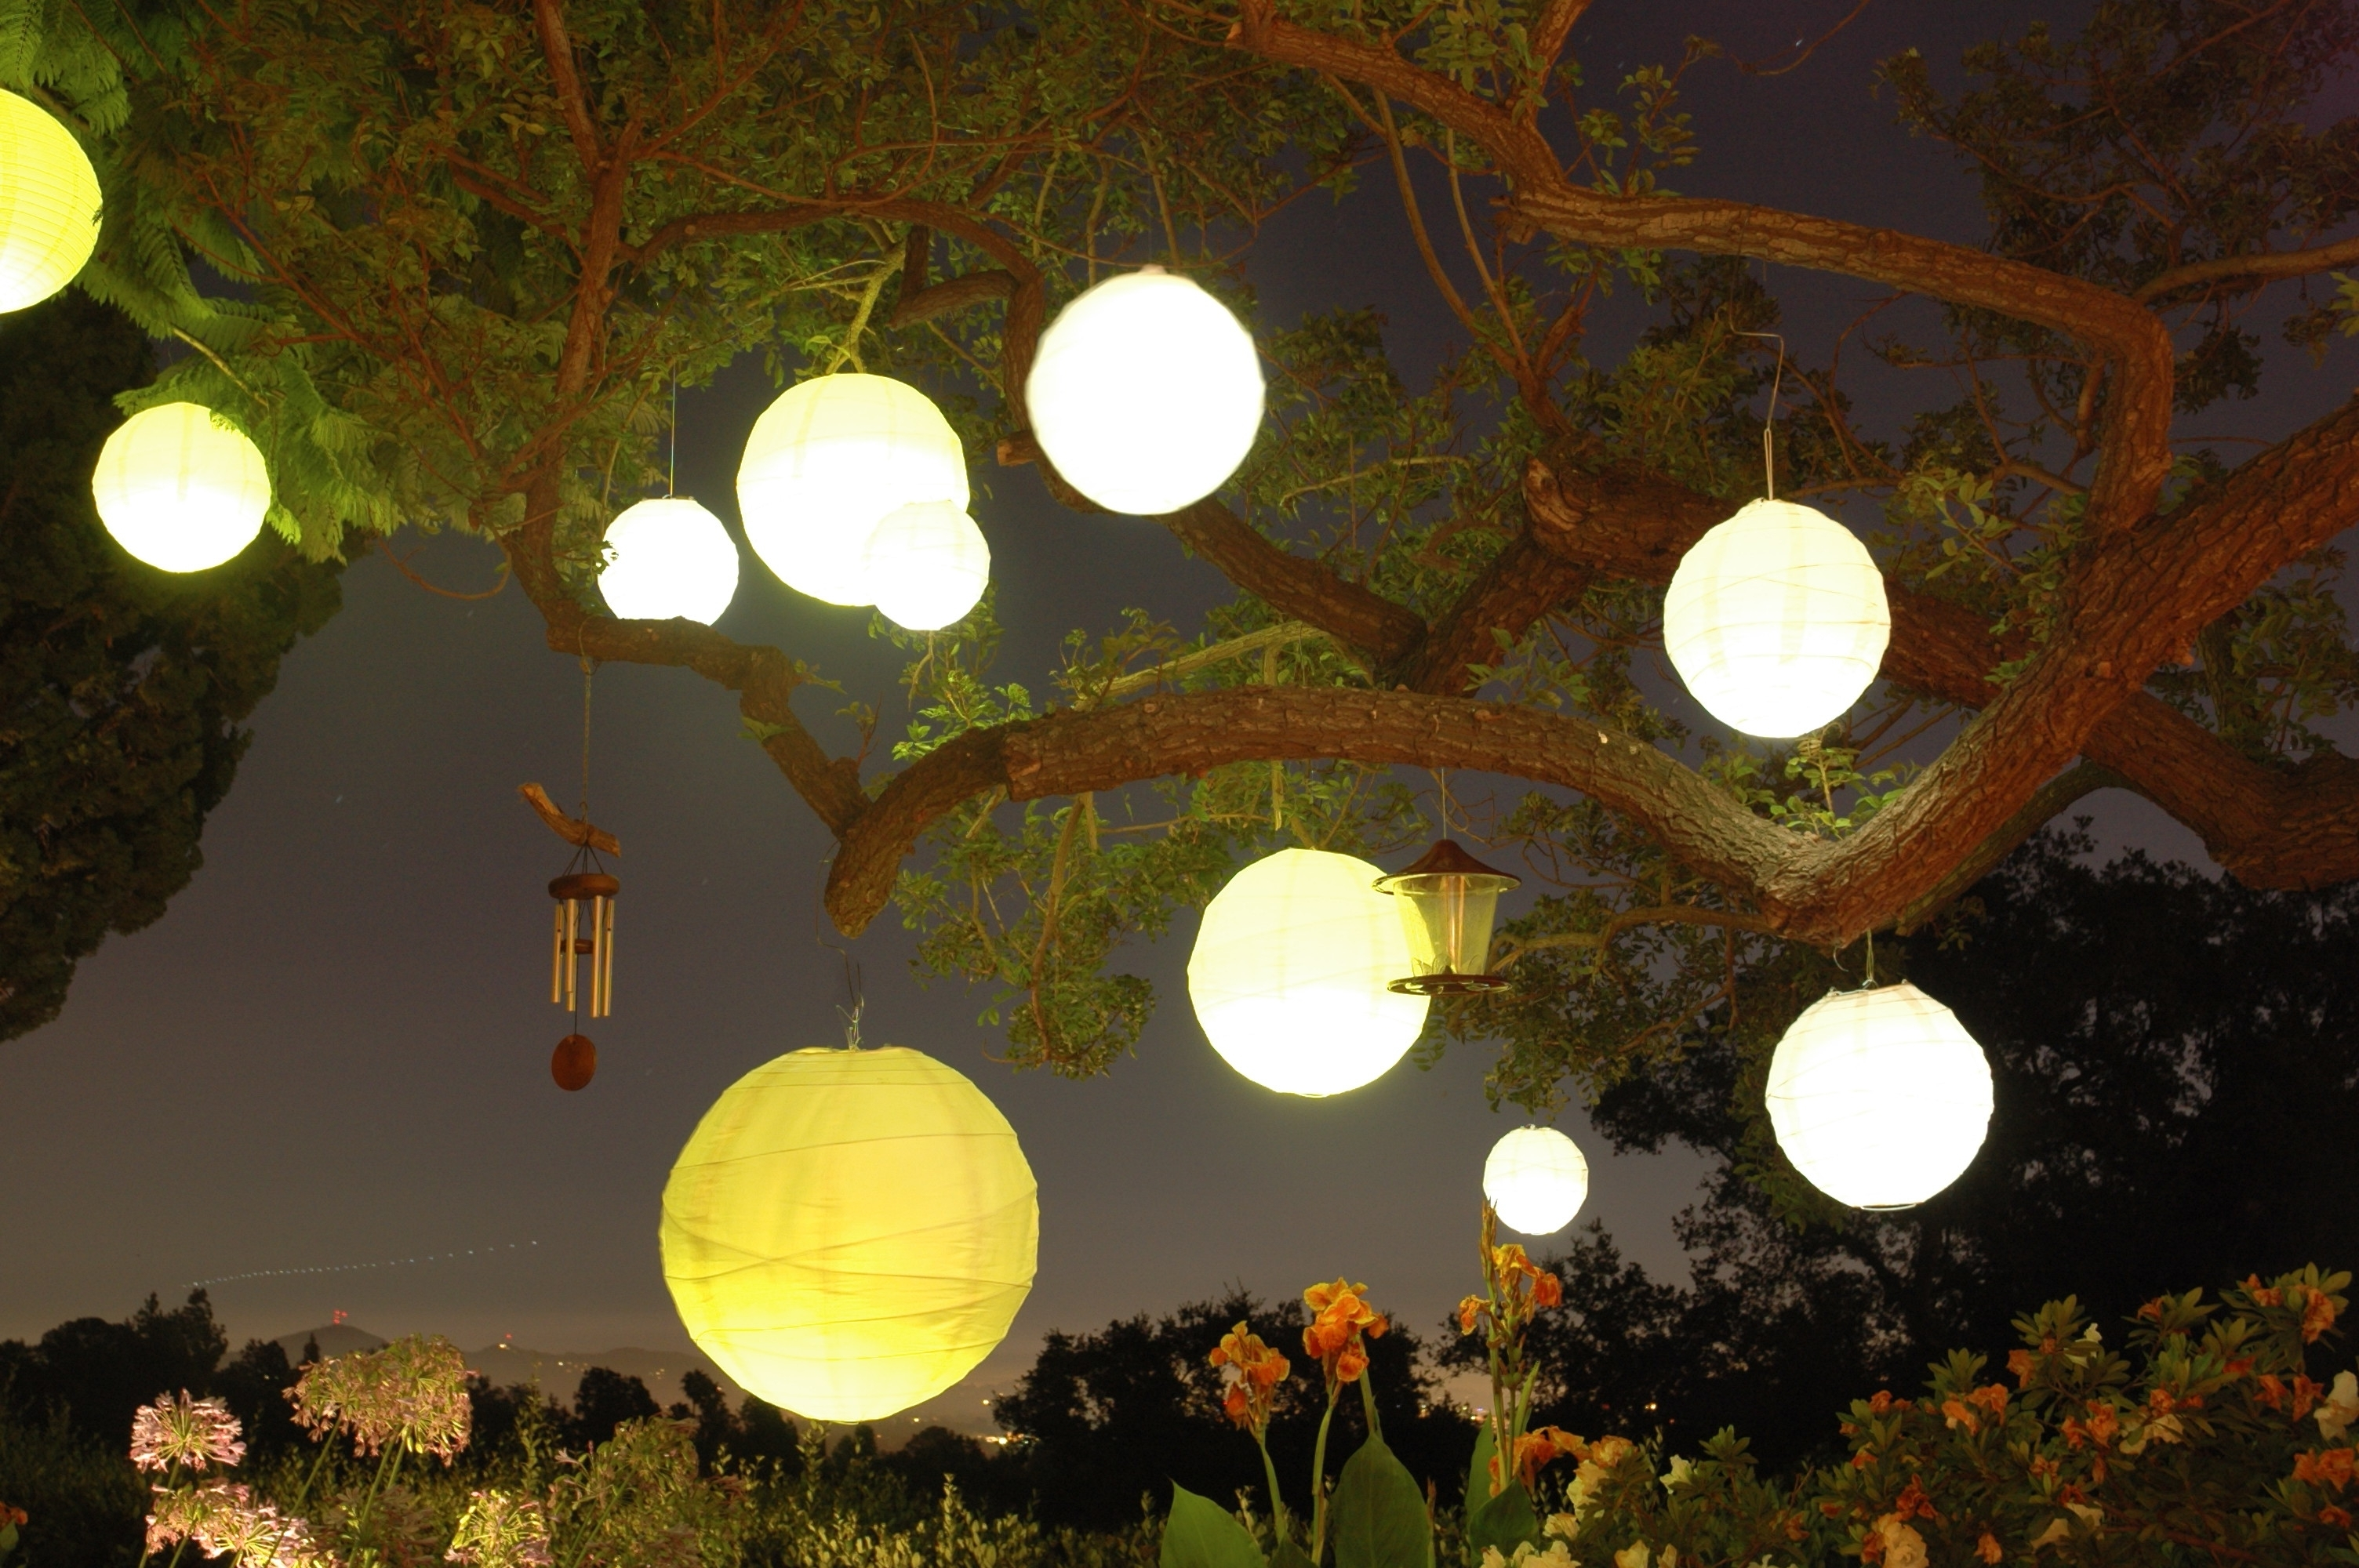 Exterior Outdoor Hanging Paper Lanterns Outdoor Chinese Paper Pertaining To Popular Outdoor Hanging Paper Lanterns (View 7 of 20)